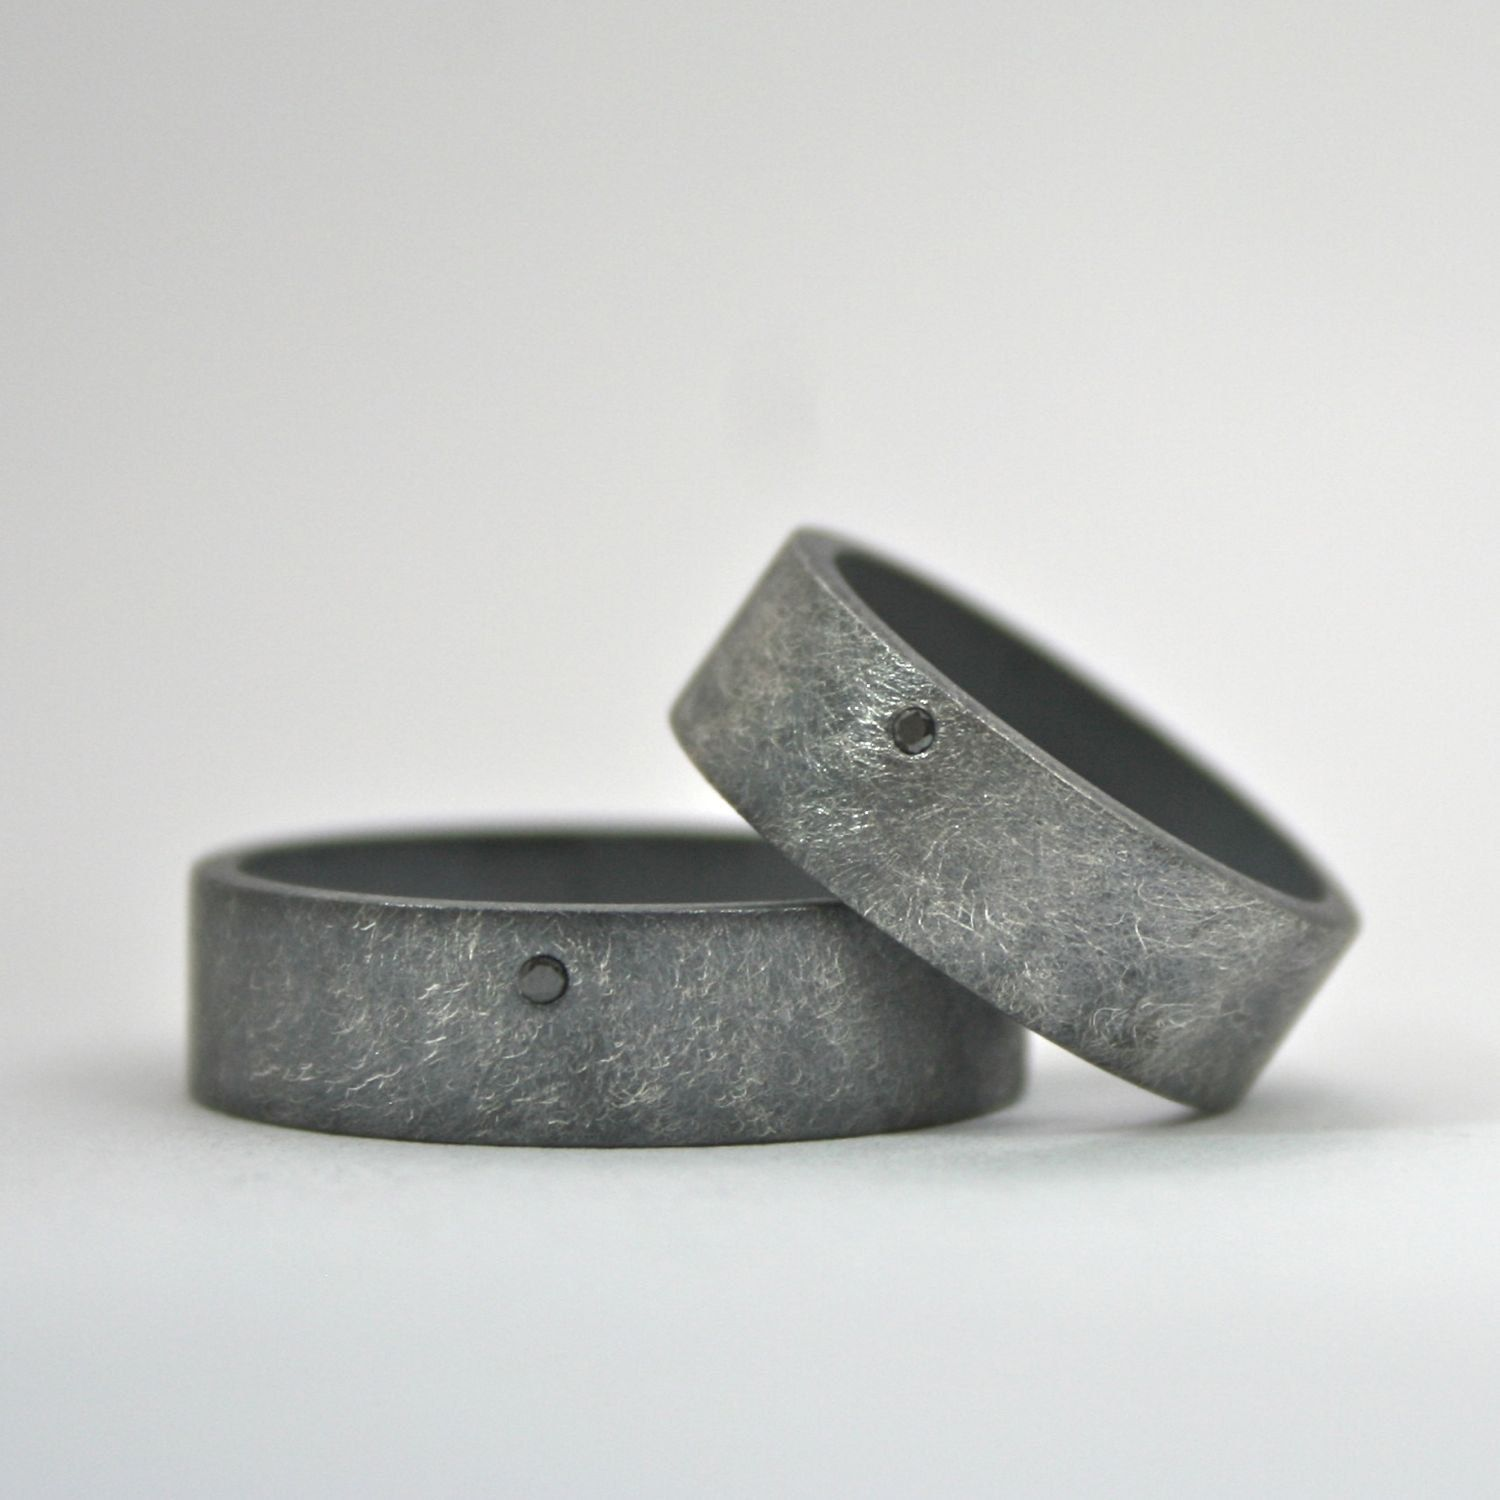 alternative wedding rings Black Diamond Ring Set Wedding Bands Oxidized Finish Wide Sterling Silver Rings